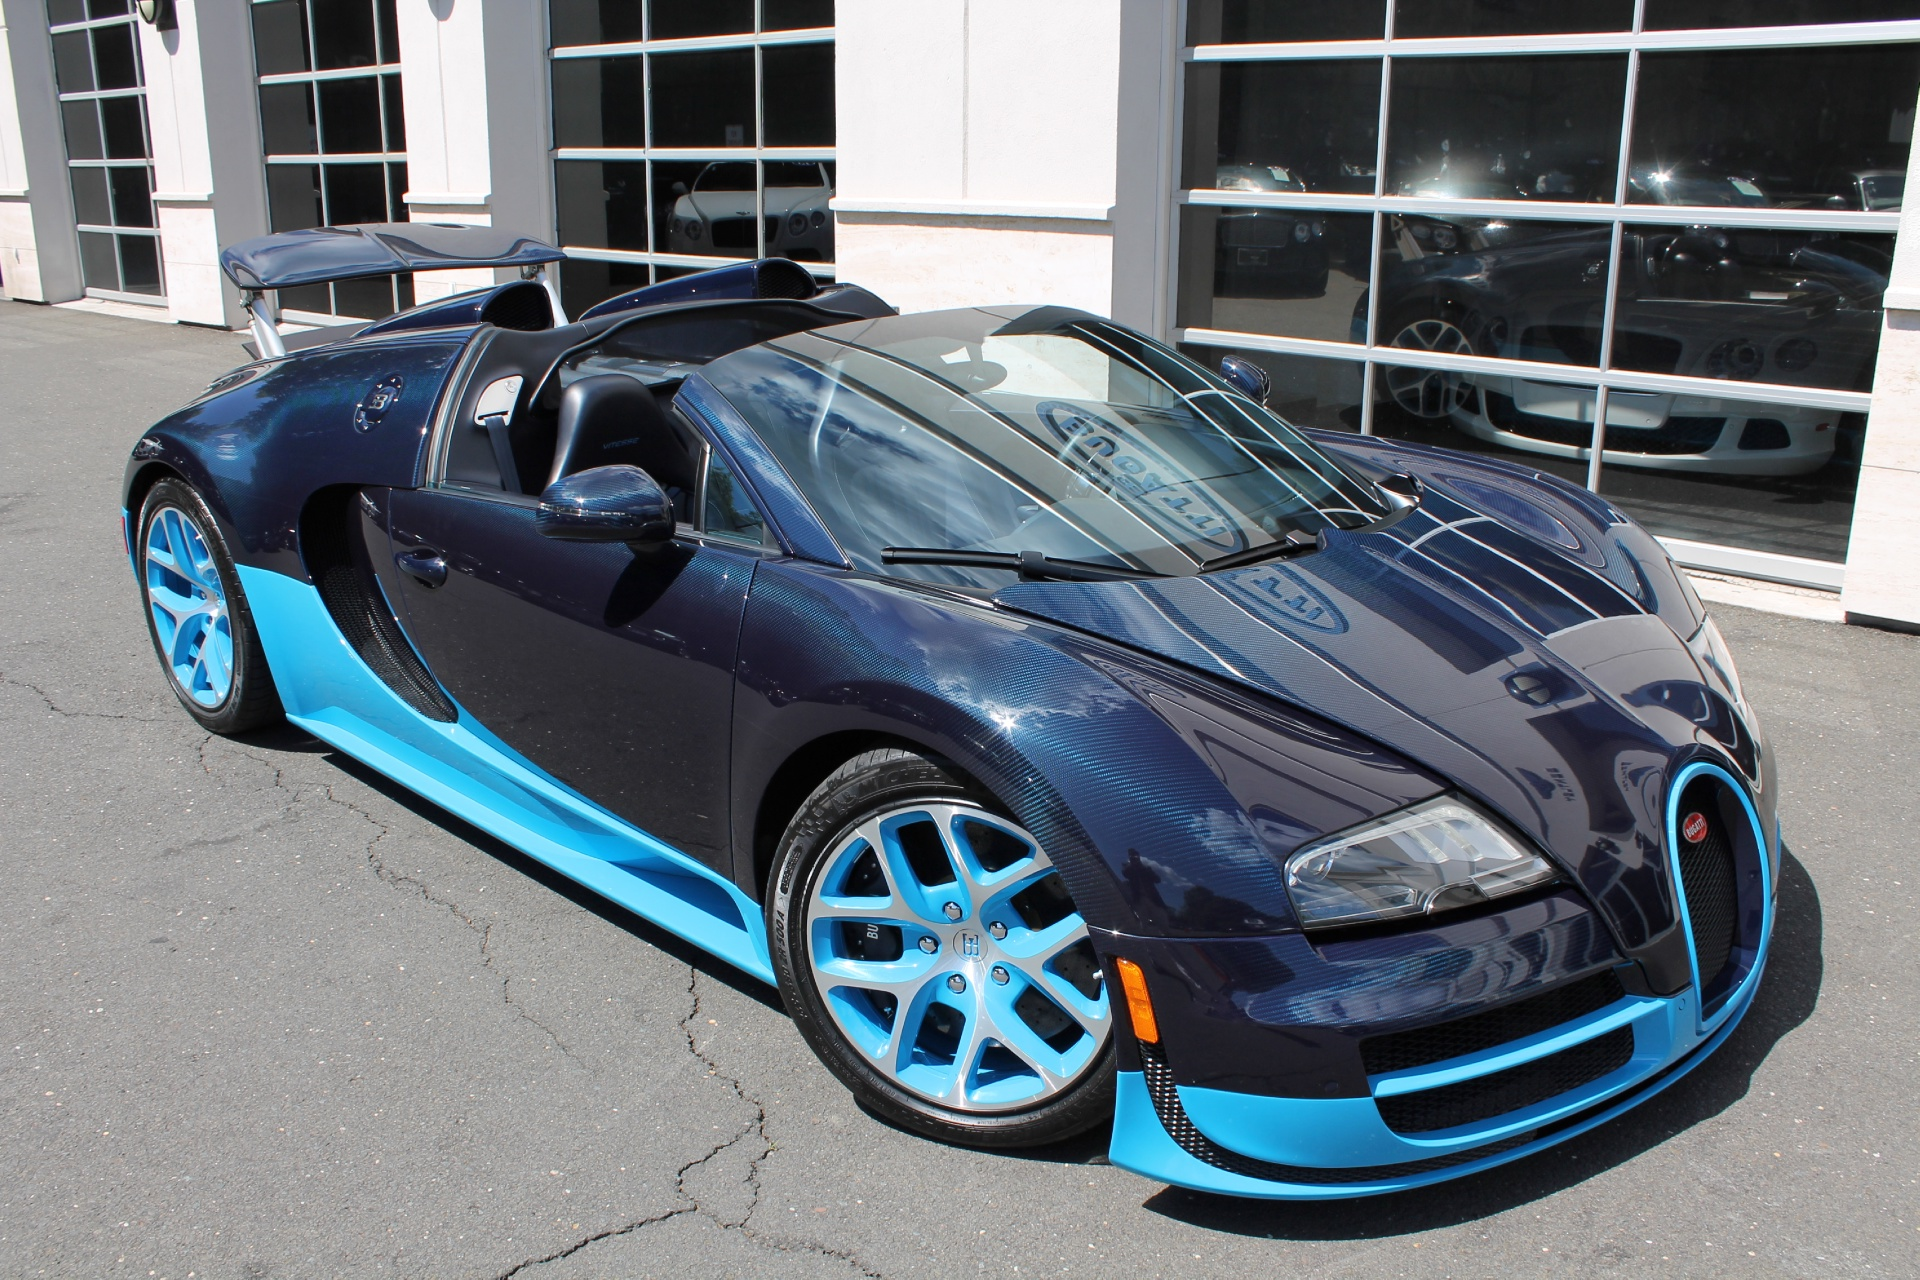 Two Bugatti Veyron Grand Sport Vitesse S For Sale At U S Dealer